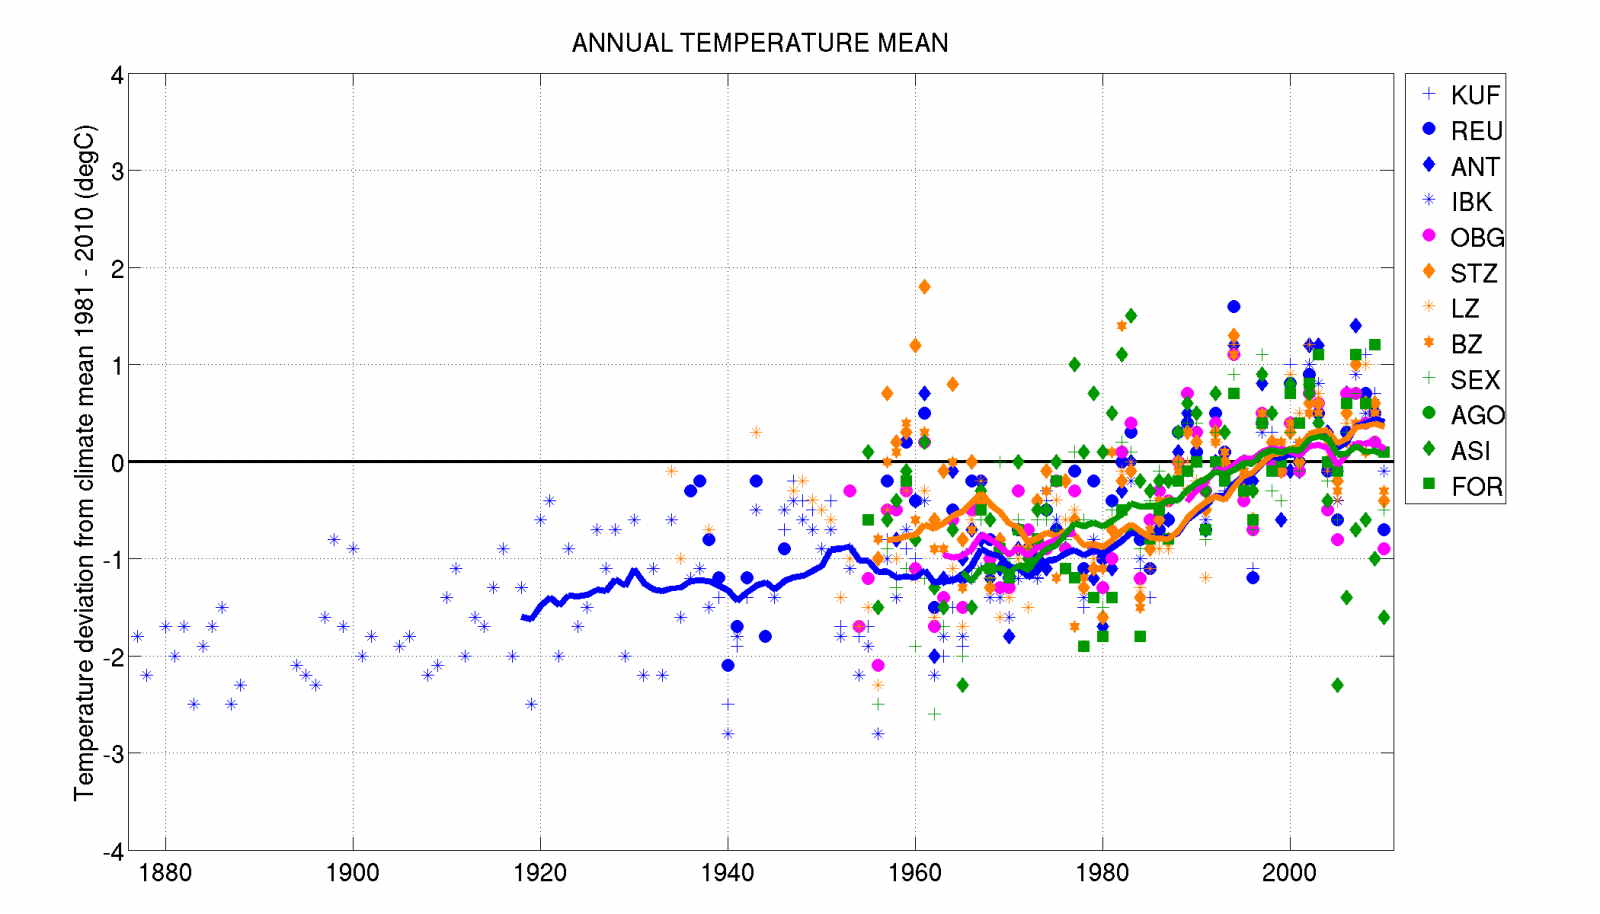 3pclim - Climate – Variability and trends between Arlberg